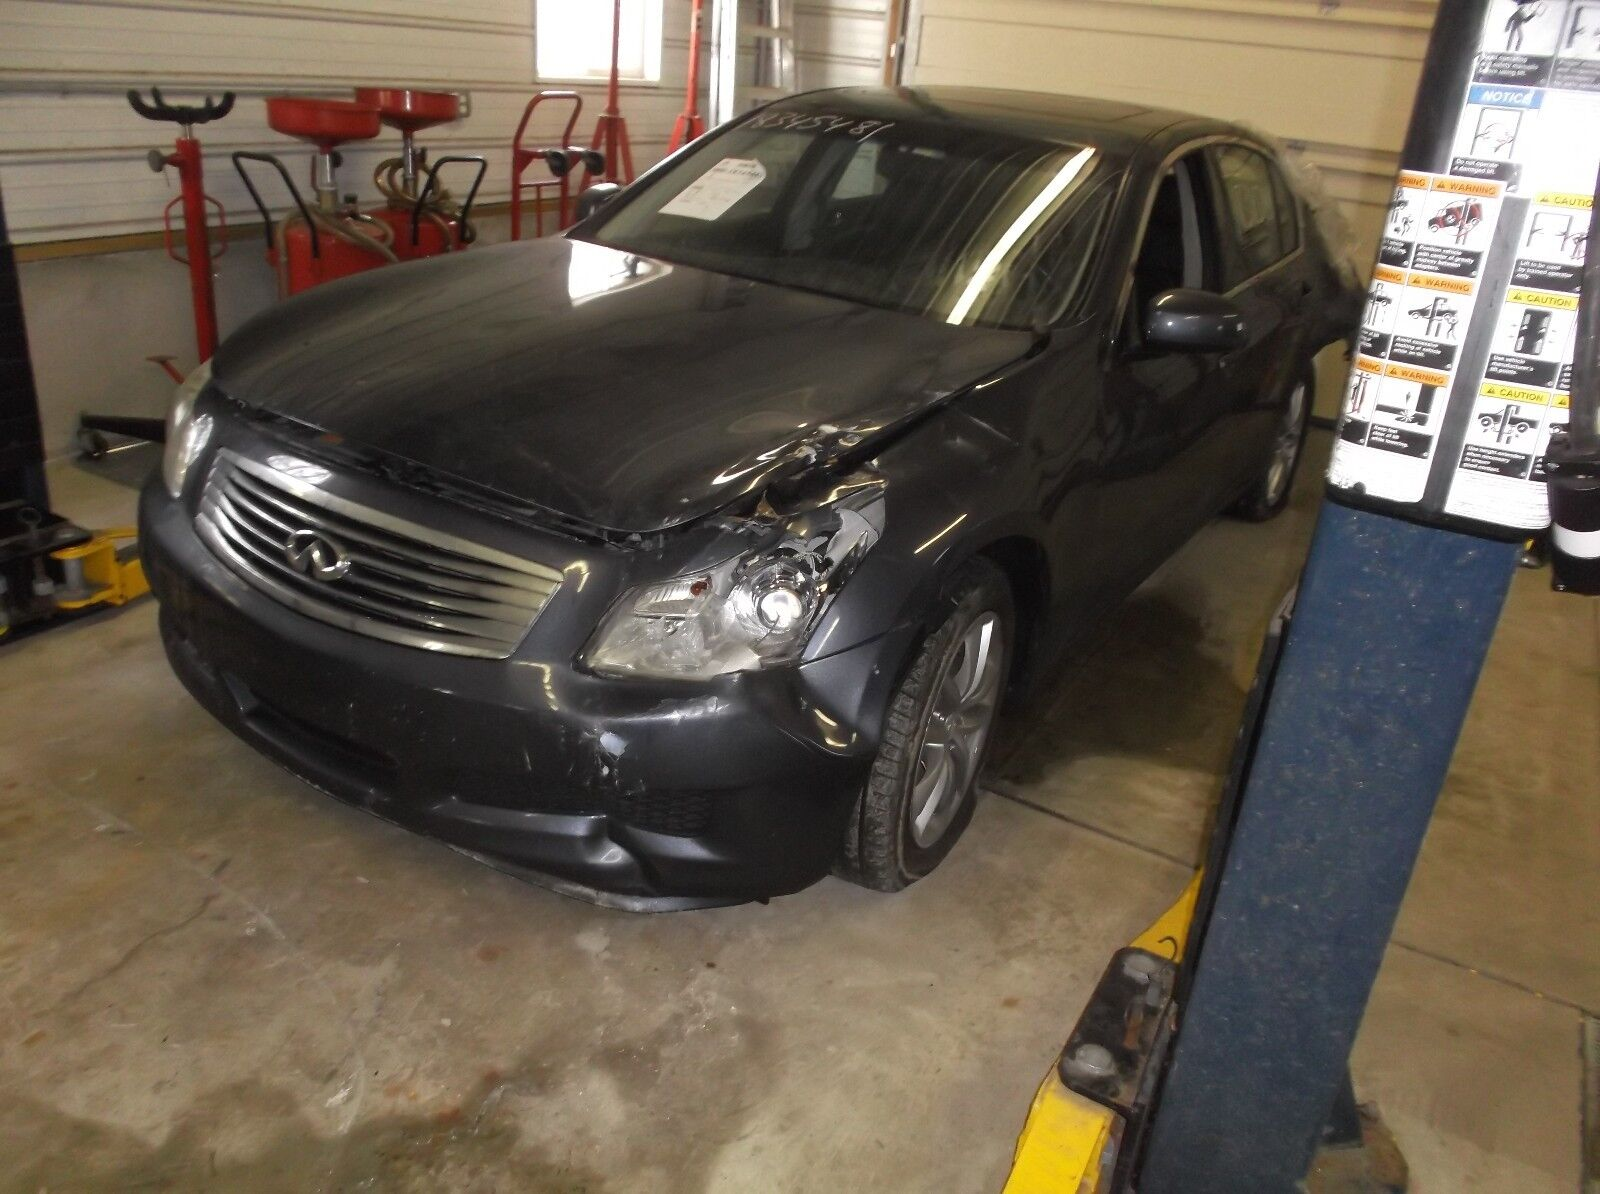 Buy Used Timing Components From Top Rated Salvage Yards Bmw 328i Belt 2007 2008 Infiniti G35 83k Awd 35 Liter Engine Chain Chains Set